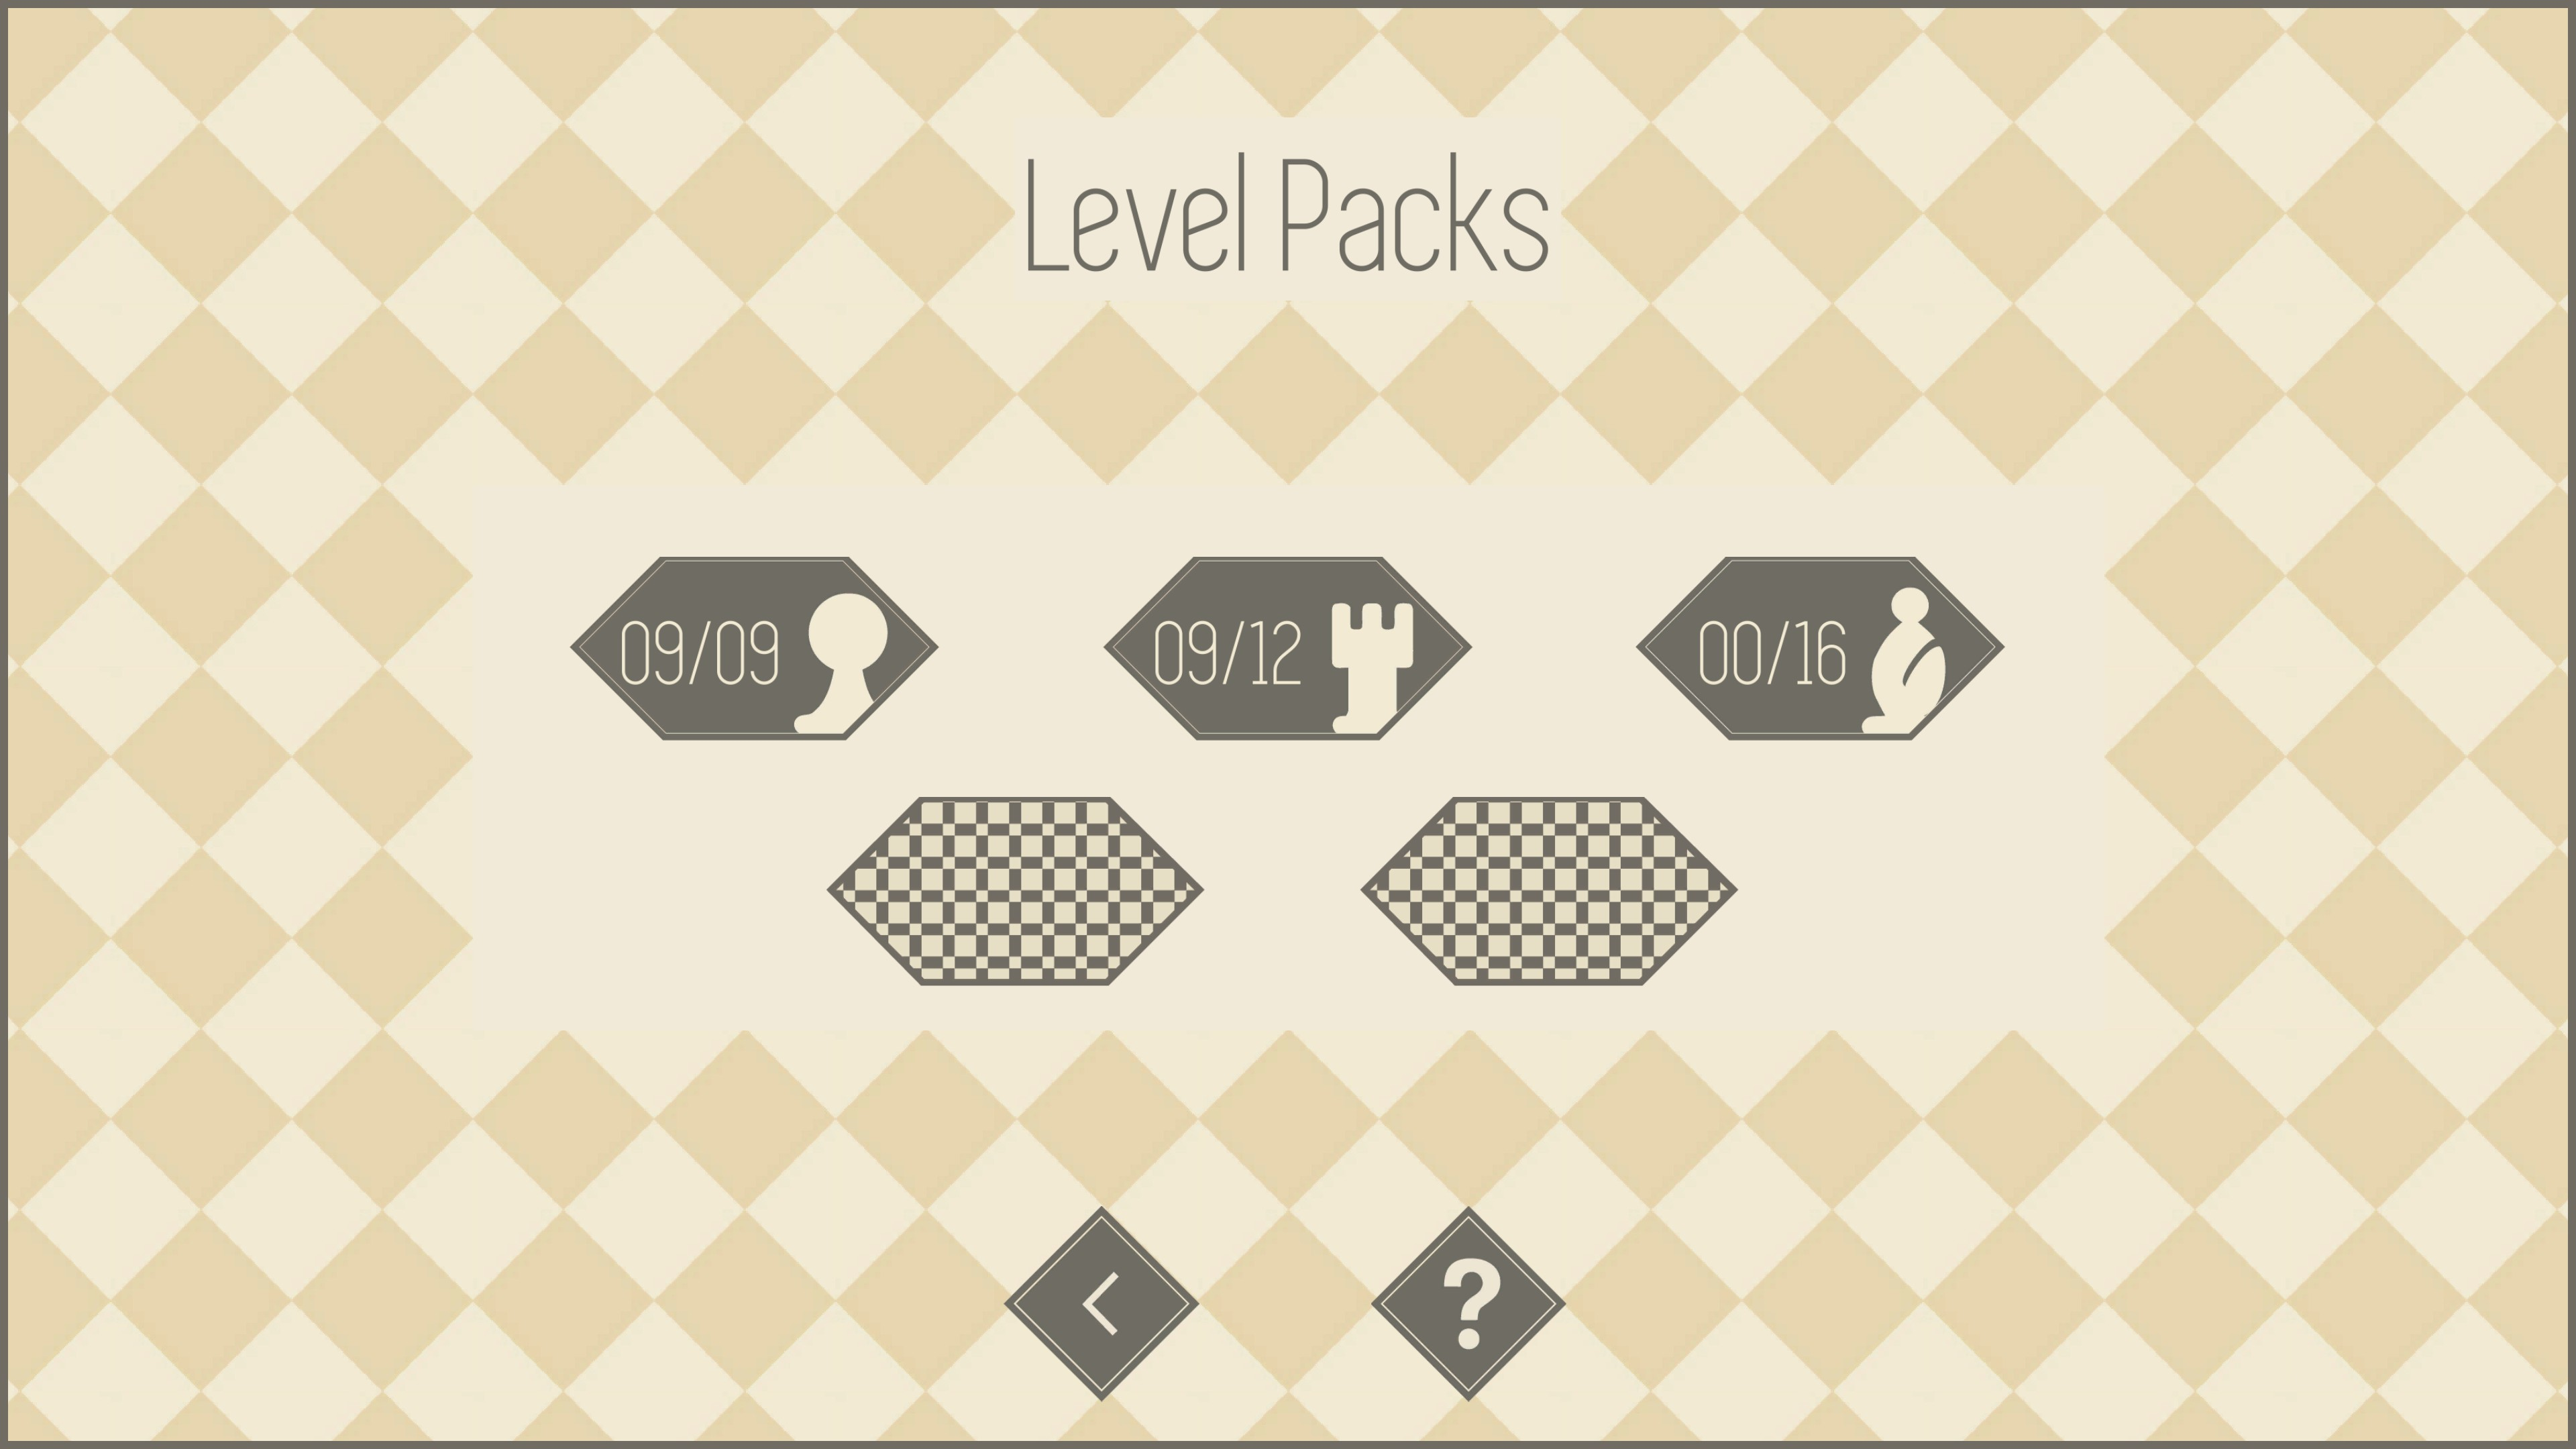 3 of 5 level packs revealed. Pack so far include pawn, rook, and bishop with 9, 12, and 16 levels respectively.